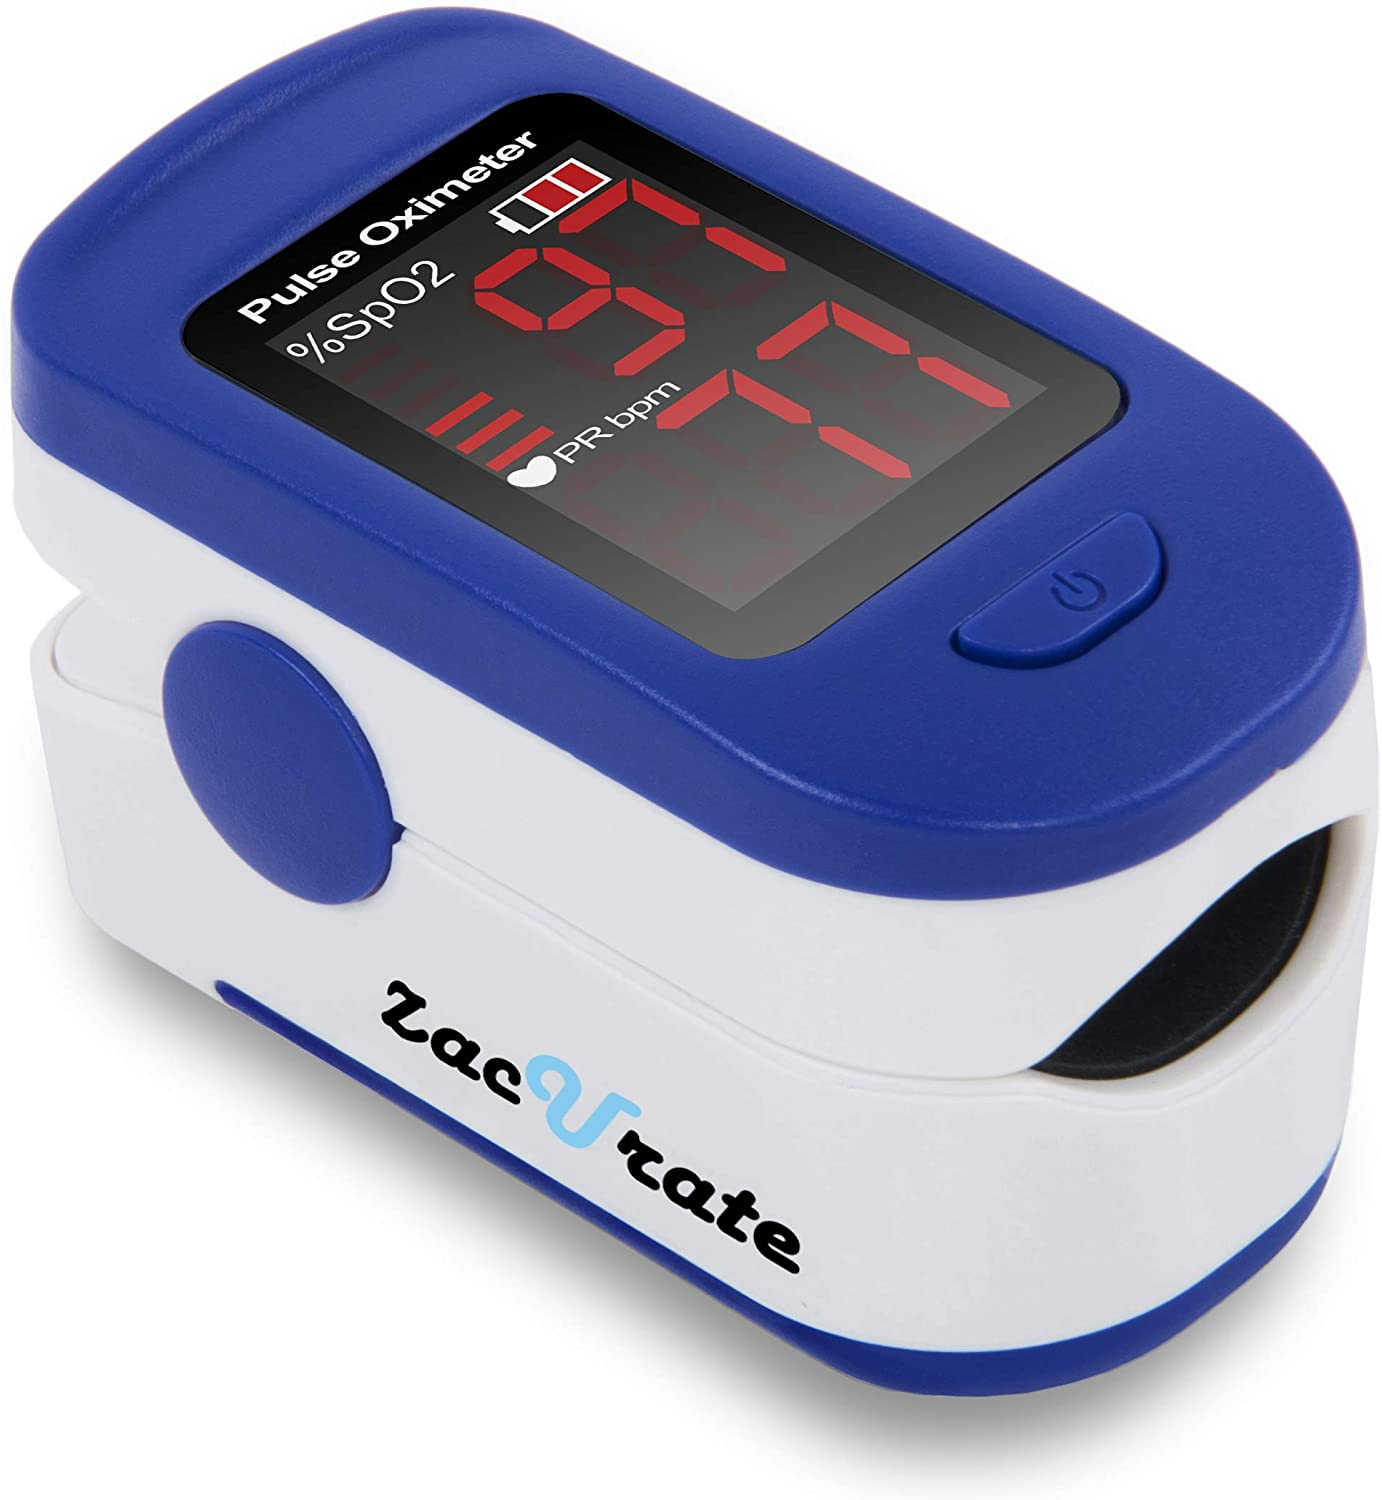 Zacurate 500BL Fingertip Pulse Oximeter Review